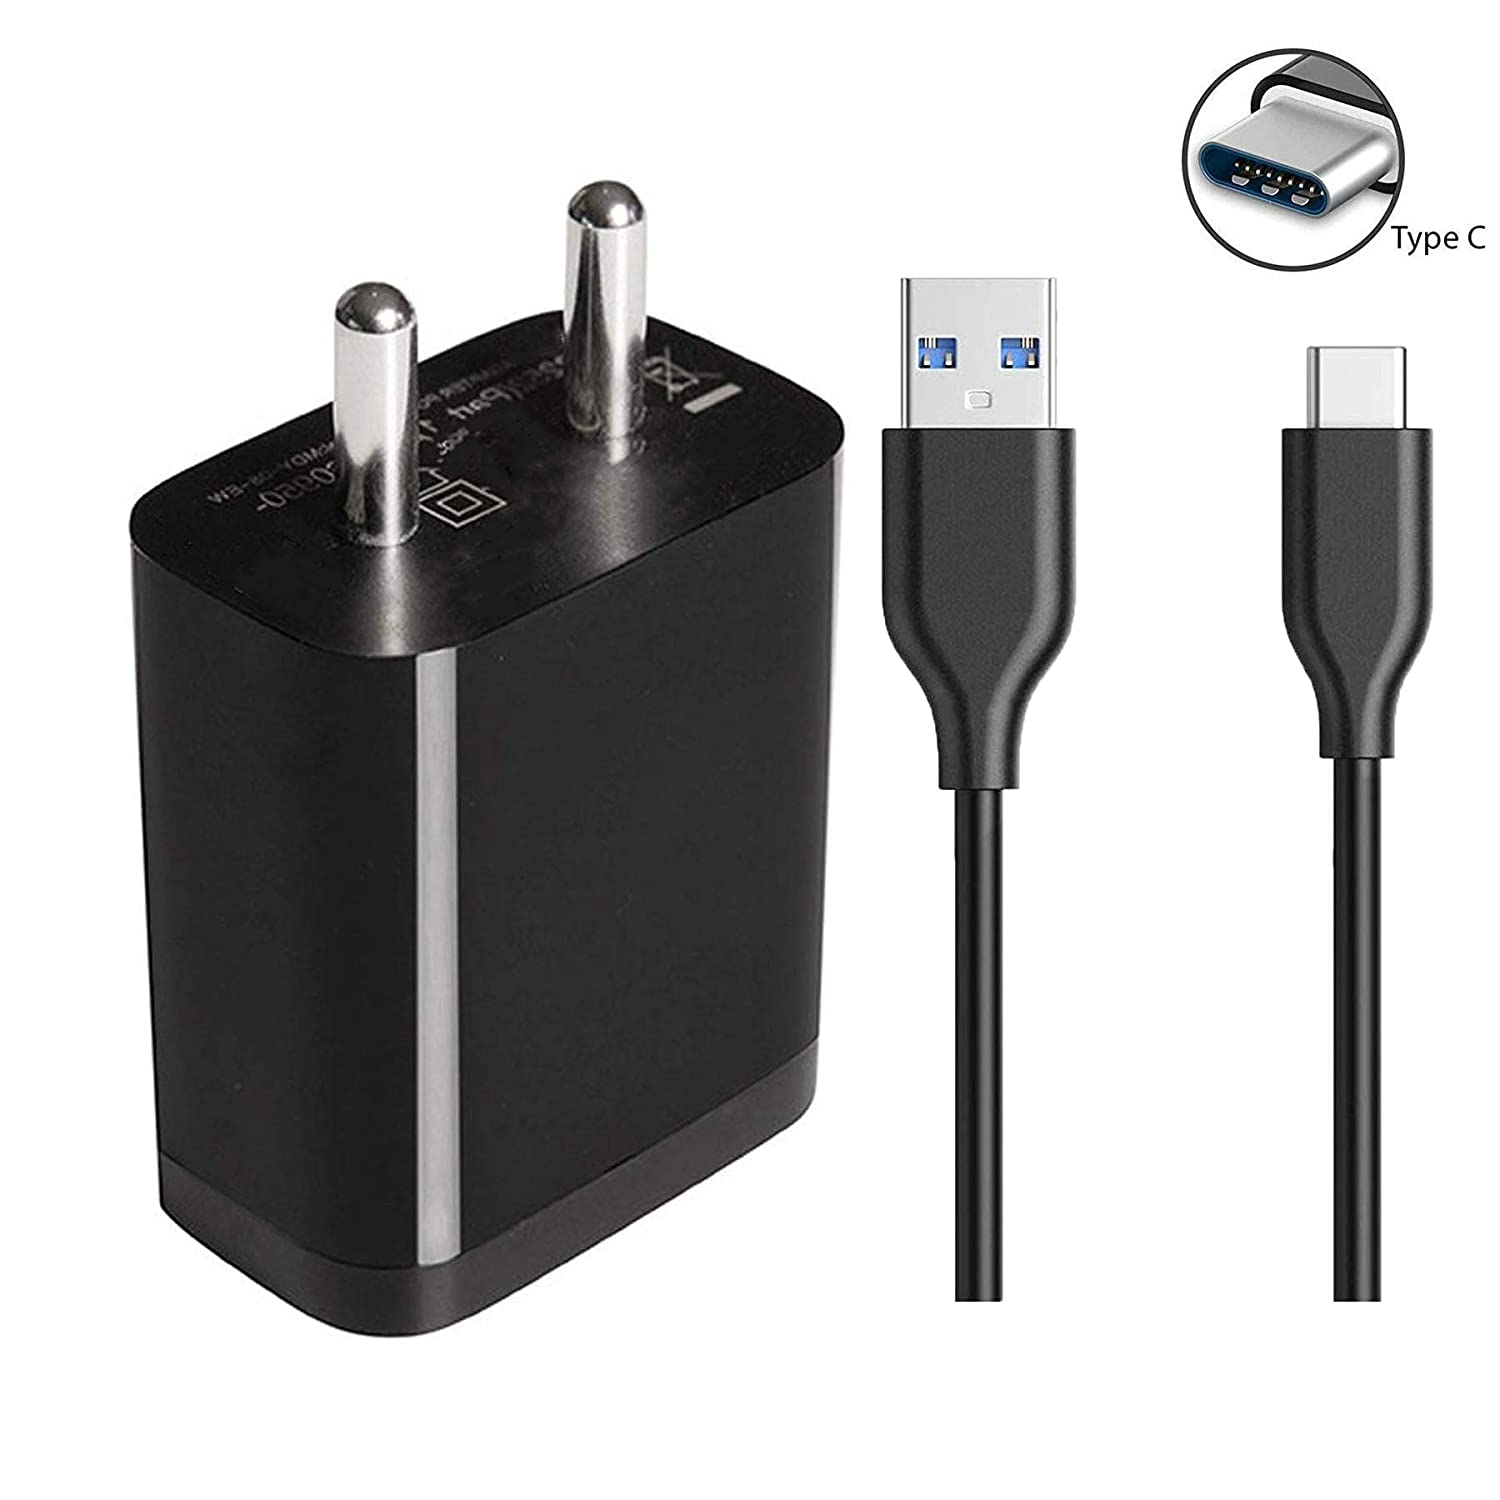 ClickAway 3.0 Charger Type C for Xiaomi Redmi Charger Adapter Wall Charger with 1 metr Type C data cable